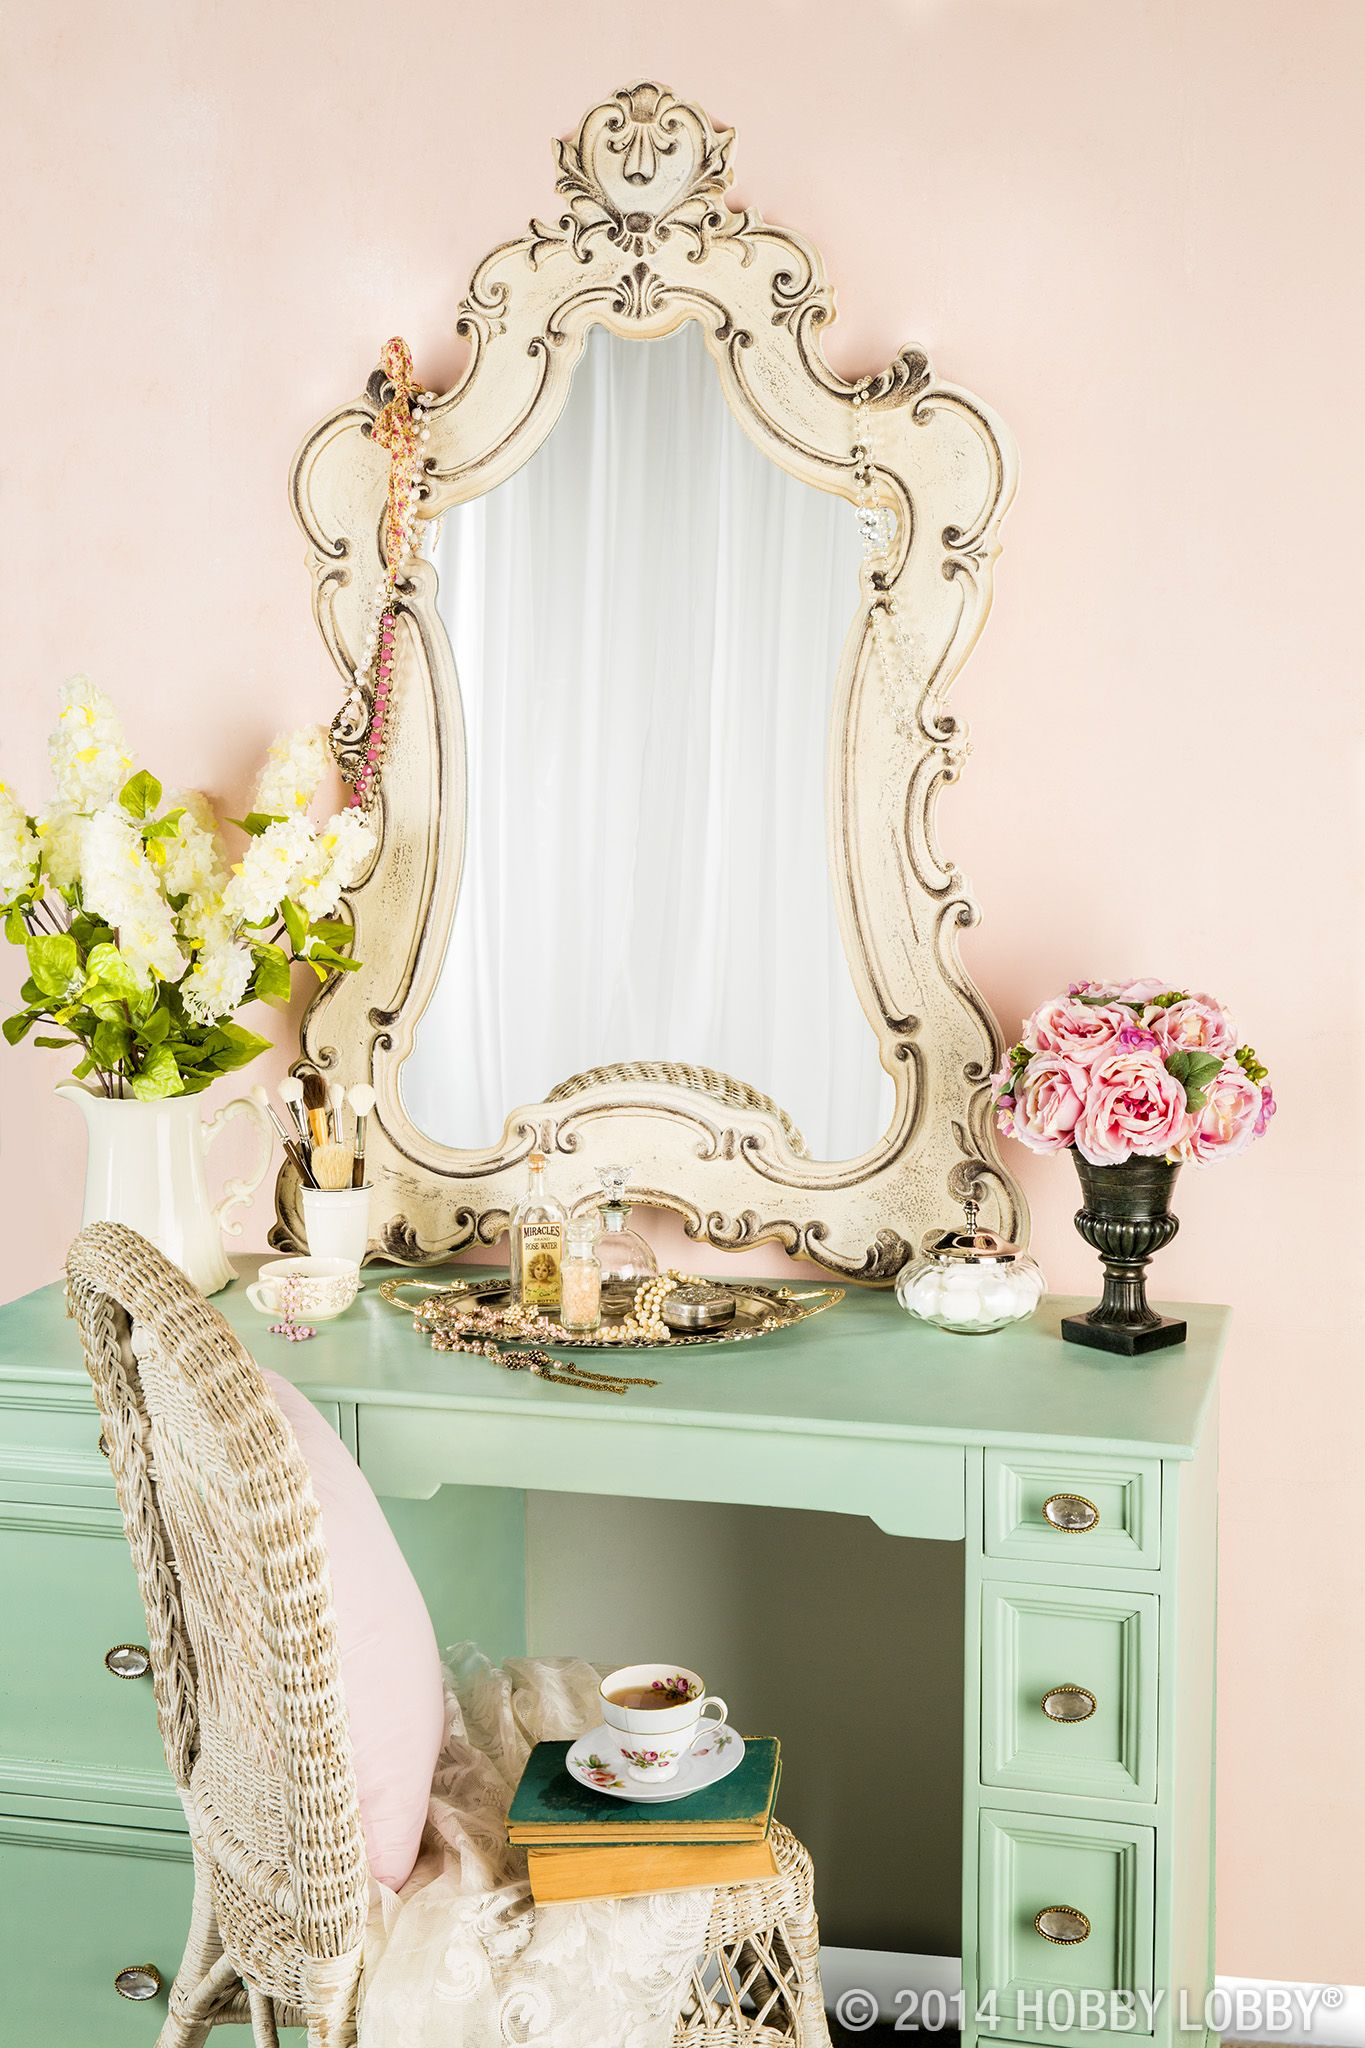 Beautiful Mirror set up your own vanity set with a beautiful mirror that